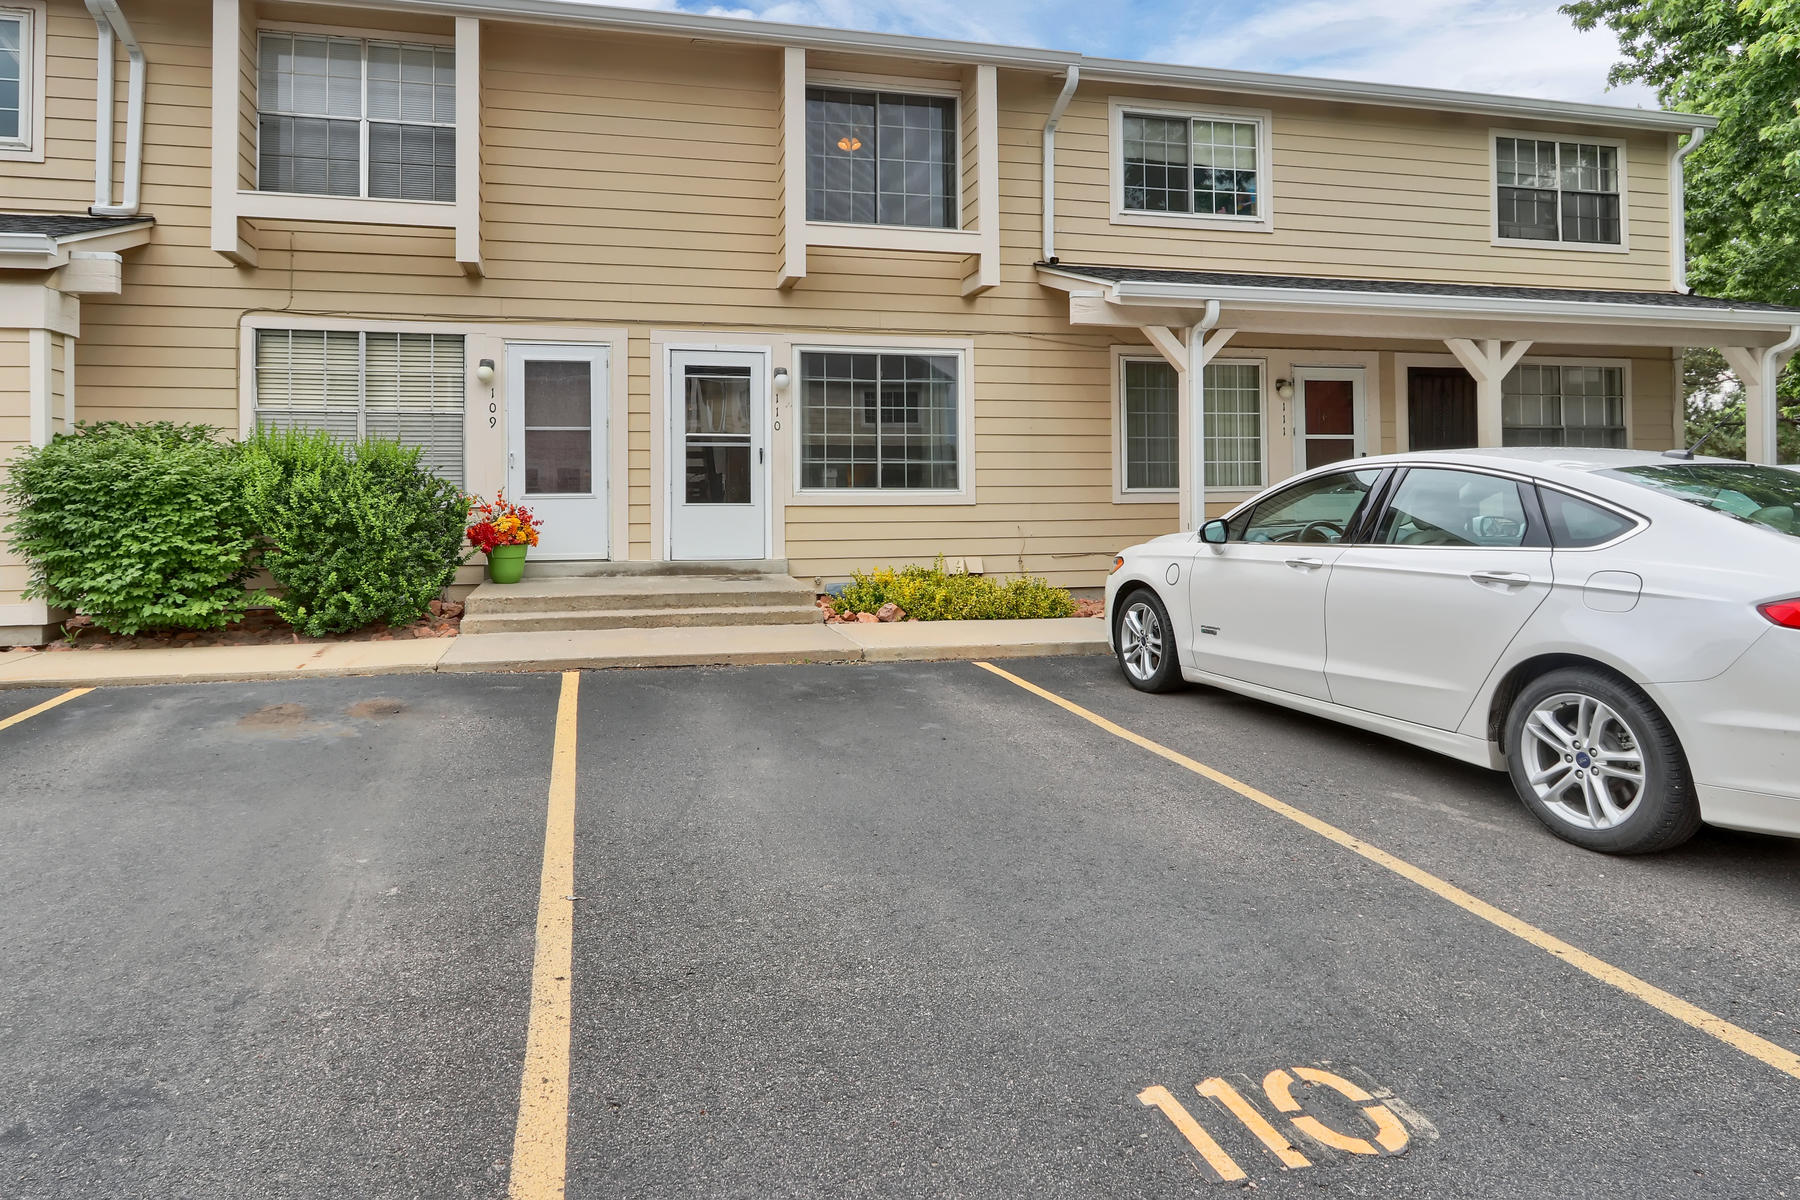 townhouses για την Πώληση στο This open, sunny townhouse is steps away from gorgeous Standley Lake 8911 Field St #110, Westminster, Κολοραντο 80021 Ηνωμένες Πολιτείες